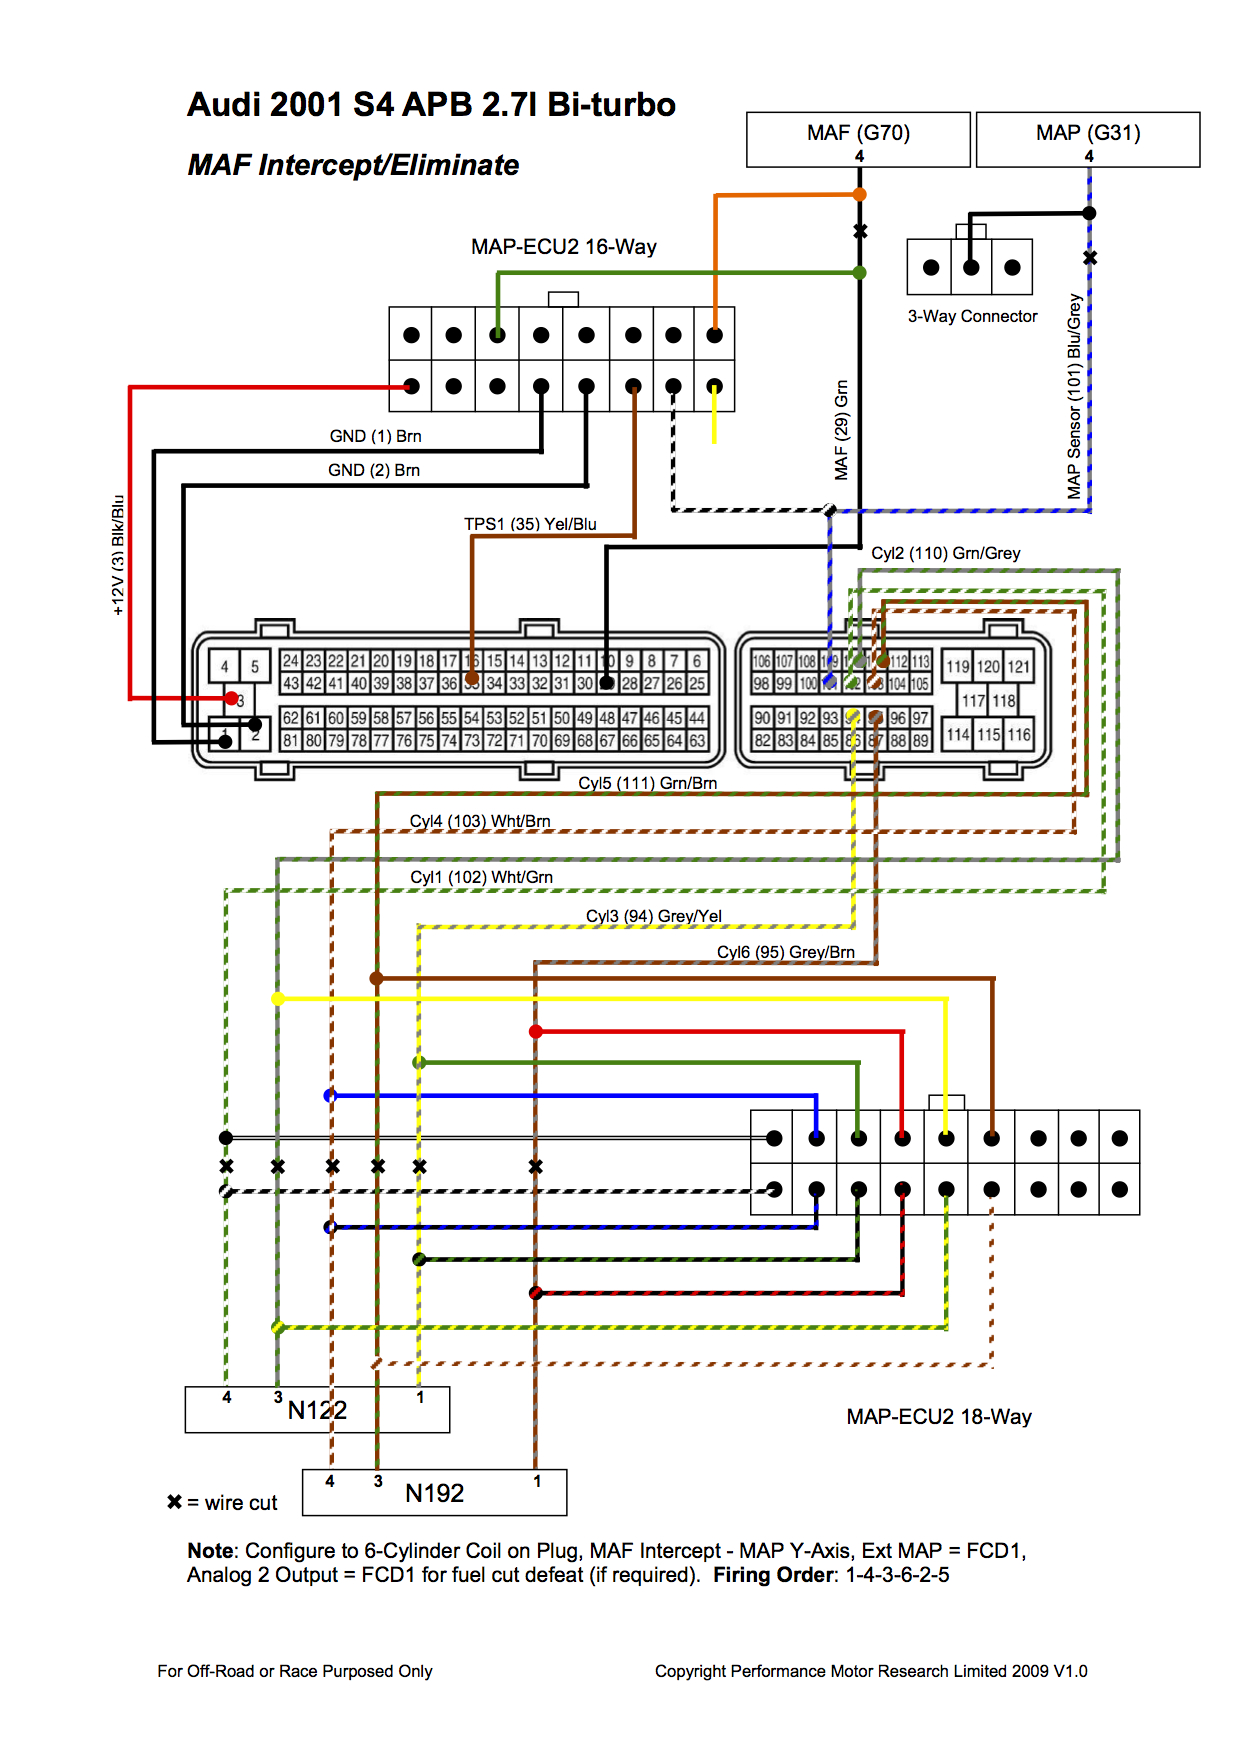 Audi S4 20011 mapecu wiring diagrams audi, bmw, ford, honda, lexus, nissan, toyota 1zz-fe ecu wiring diagram at bakdesigns.co